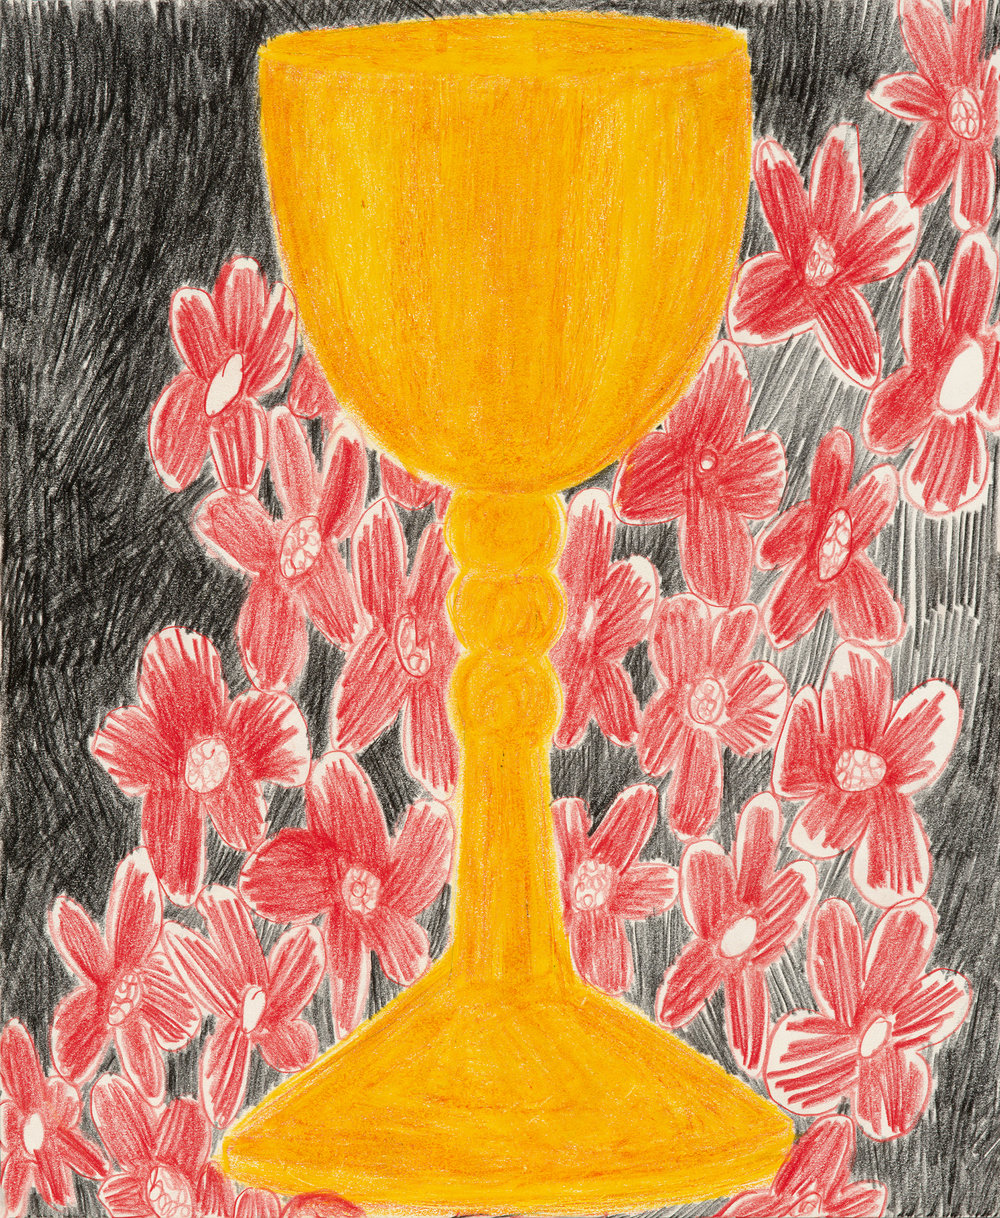 "Chalice and Red Flowers, colored pencil on paper, 14"" x 17"", 2017"